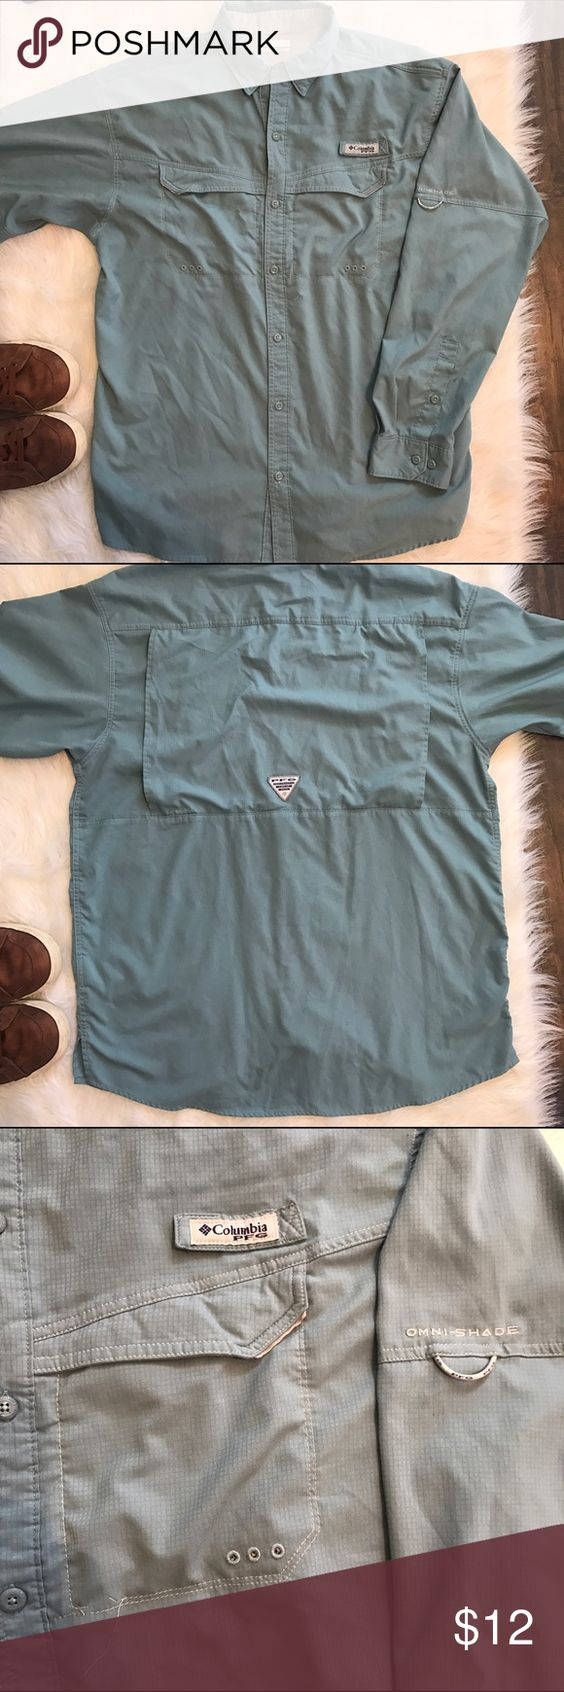 "Columbia PFG ""Low Drag Offshore"" long sleeve shirt Teal Columbia PFG ""Low Drag Offshore"" long sleeve shirt. Size L. Supremely comfortable and light weight fishing shirt 🎣. In fair used condition. Some very slight pilling. Columbia Shirts Casual Button Down Shirts"